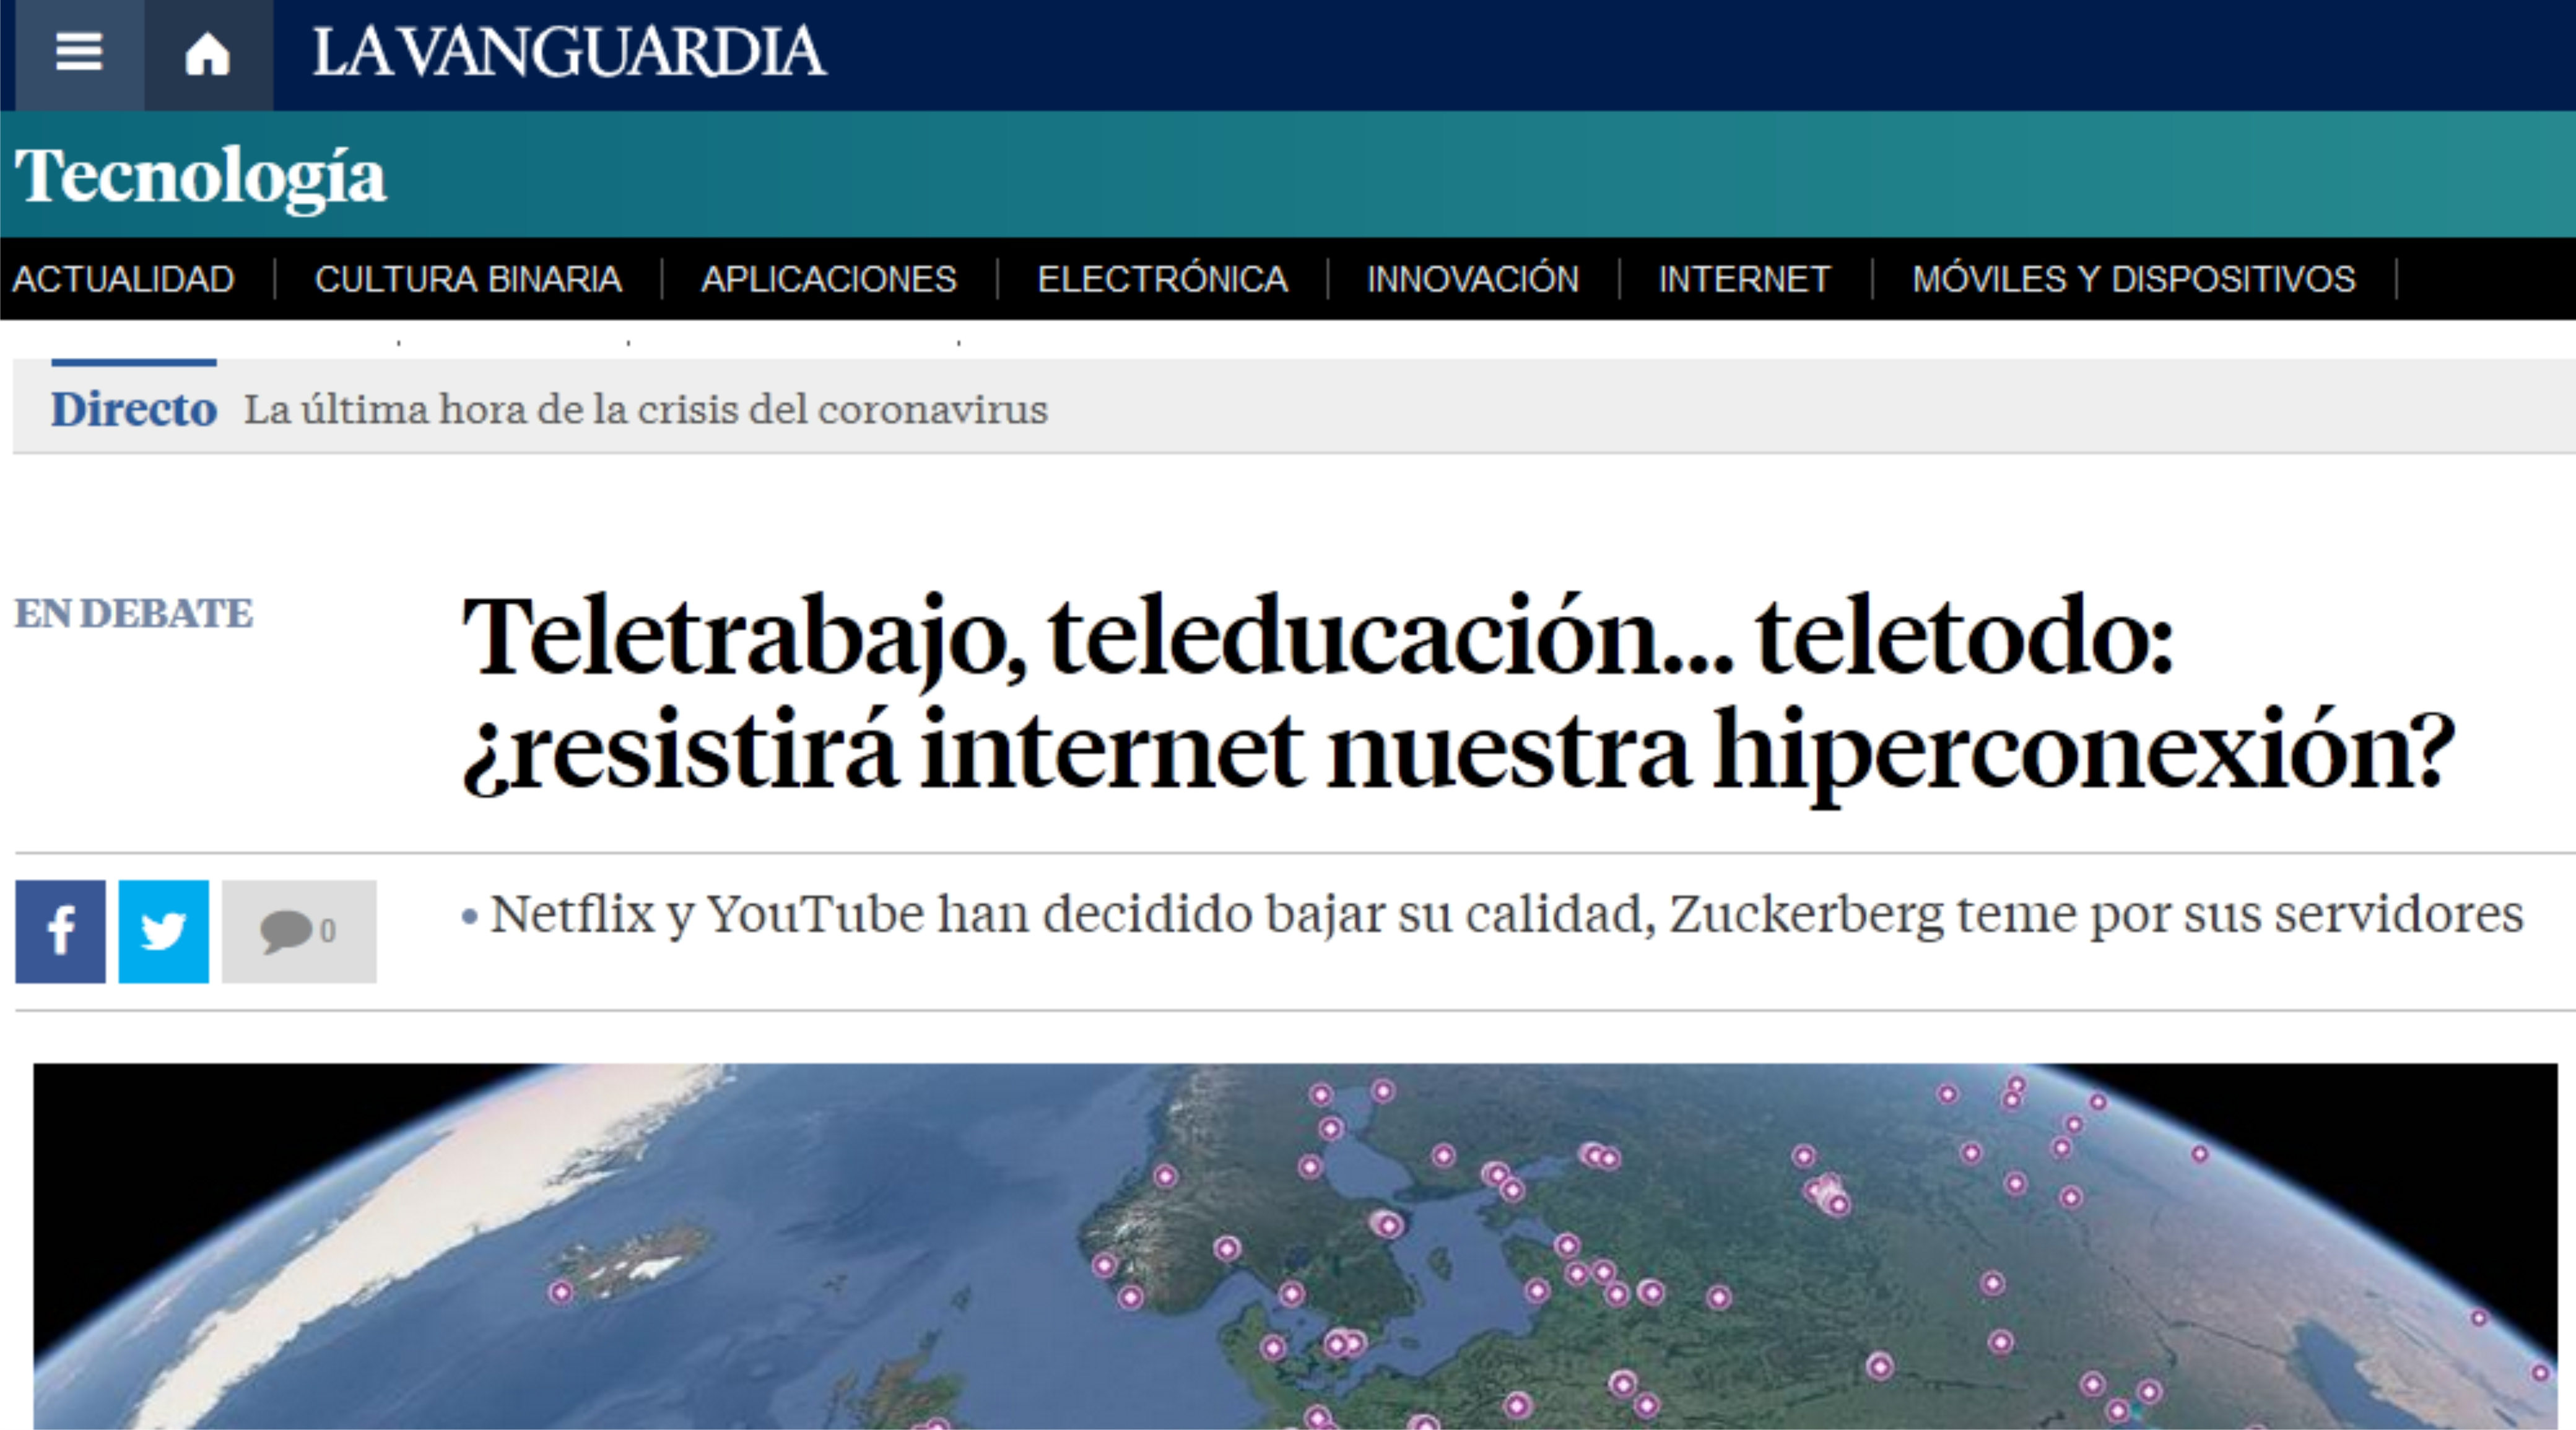 noticia-la-vanguardia.jpg